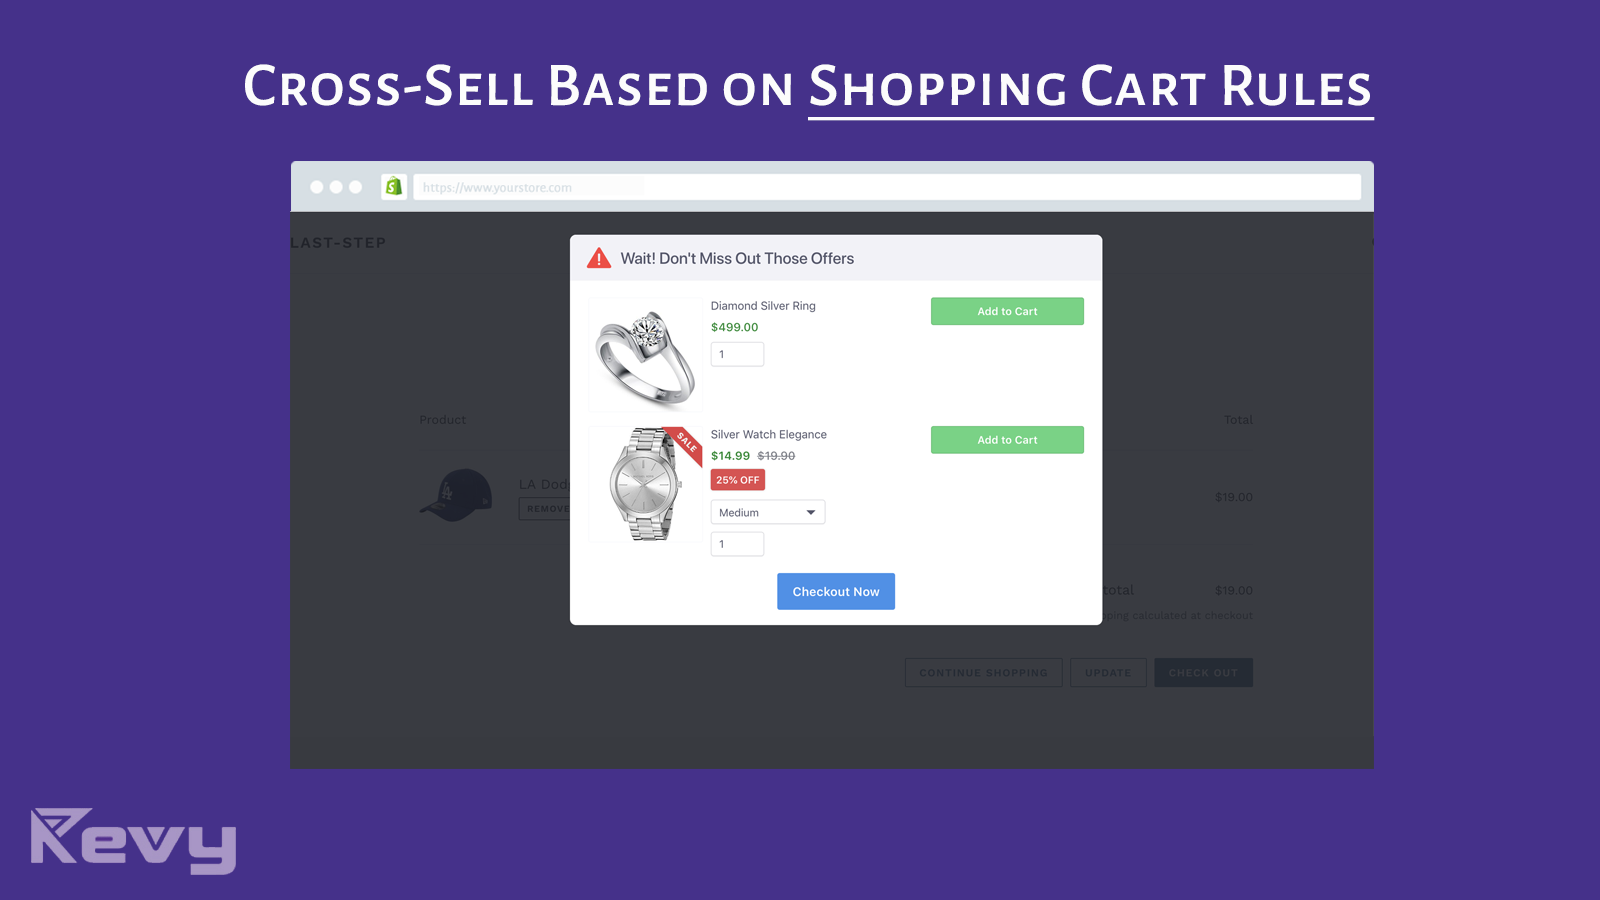 Cross sell based on cart rules: cart products or cart value